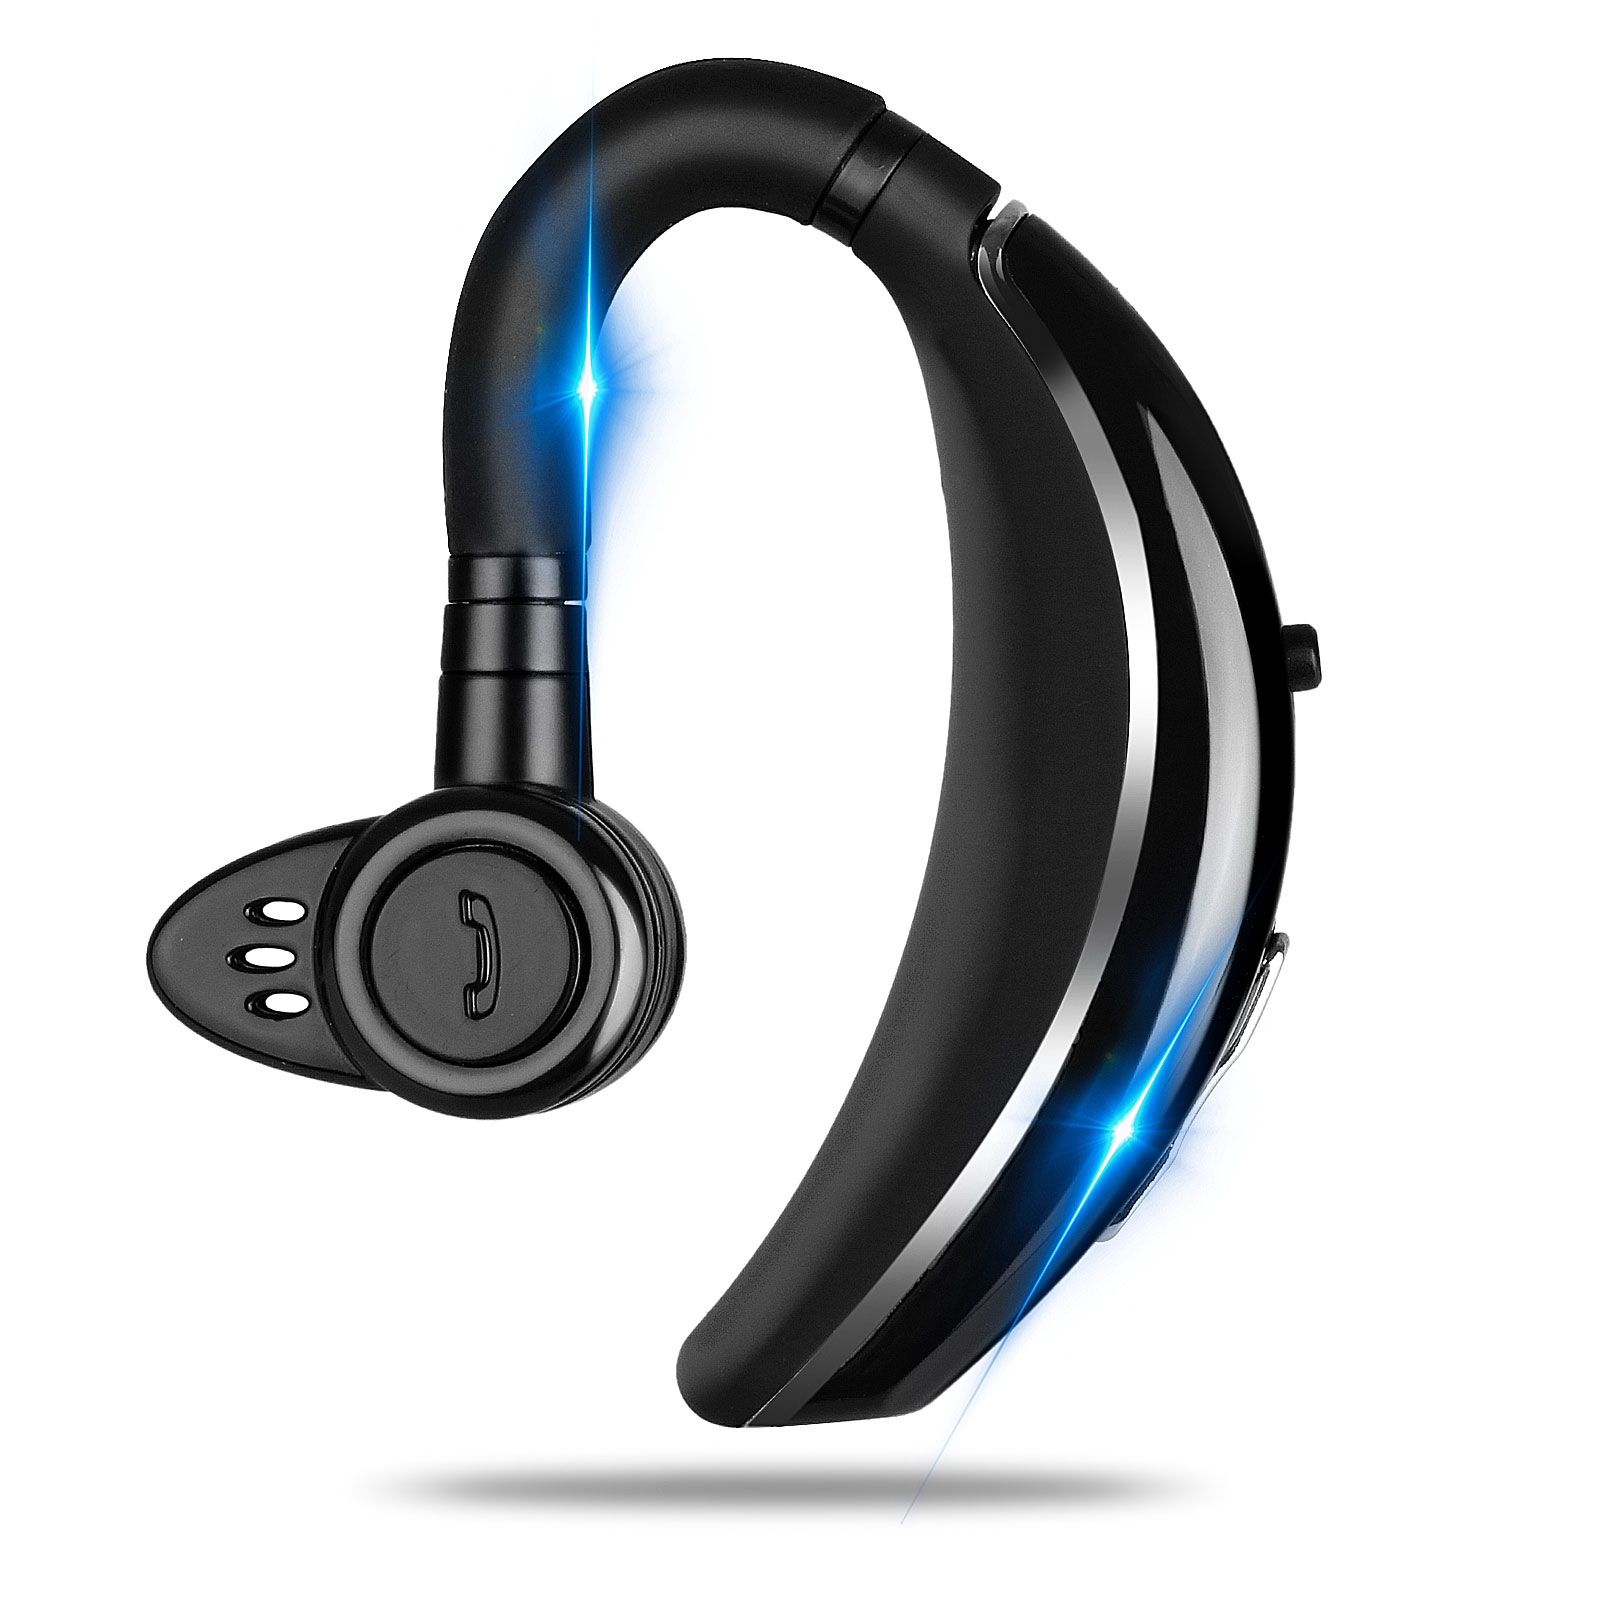 Bluetooth Headset Tsv Wireless Earpiece Bluetooth 4 1 For Cell Phones In Ear Piece Hands Free Earbud Headphone W Mic Noise Cancelling For Driving Compatible W Iphone 11 11 Pro Samsung Cellphone Walmart Com